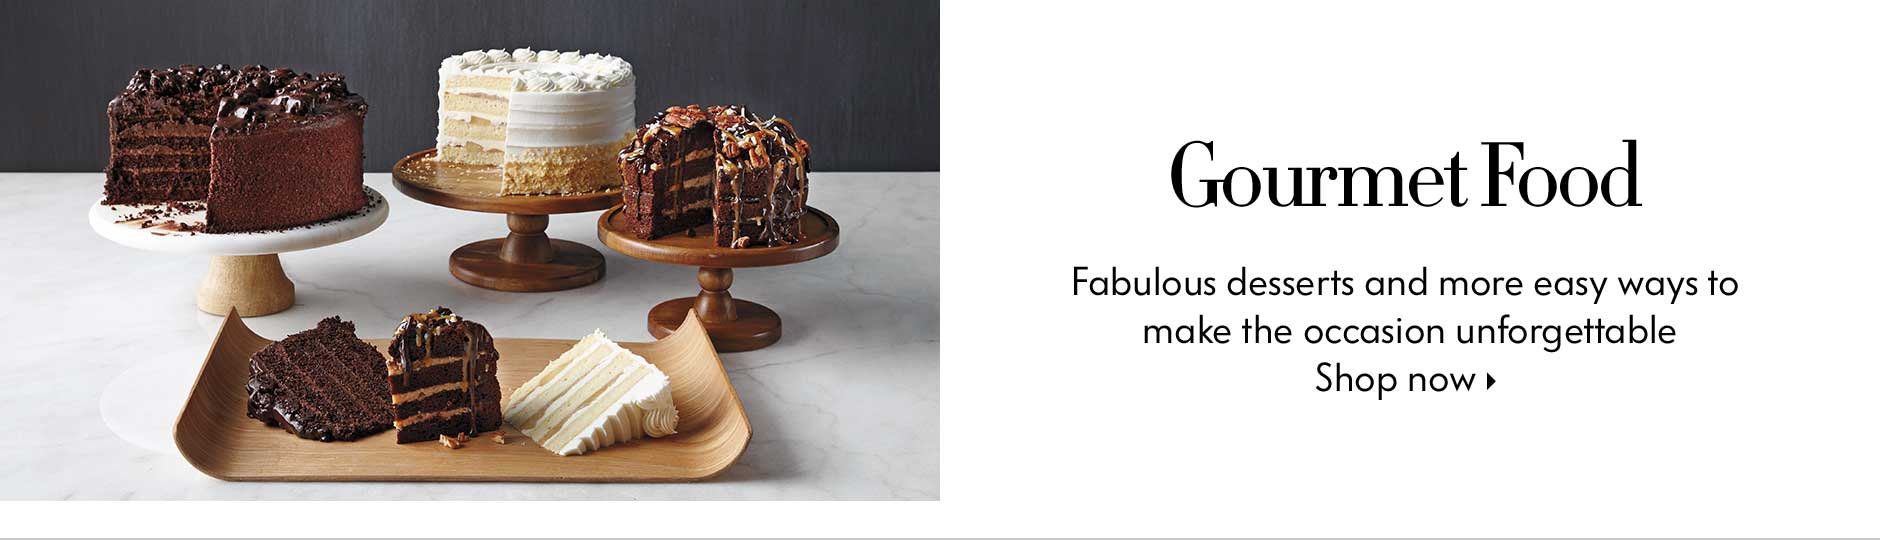 Gourmet Food - Fabulous desserts and more easy ways to make the occasion unforgettable